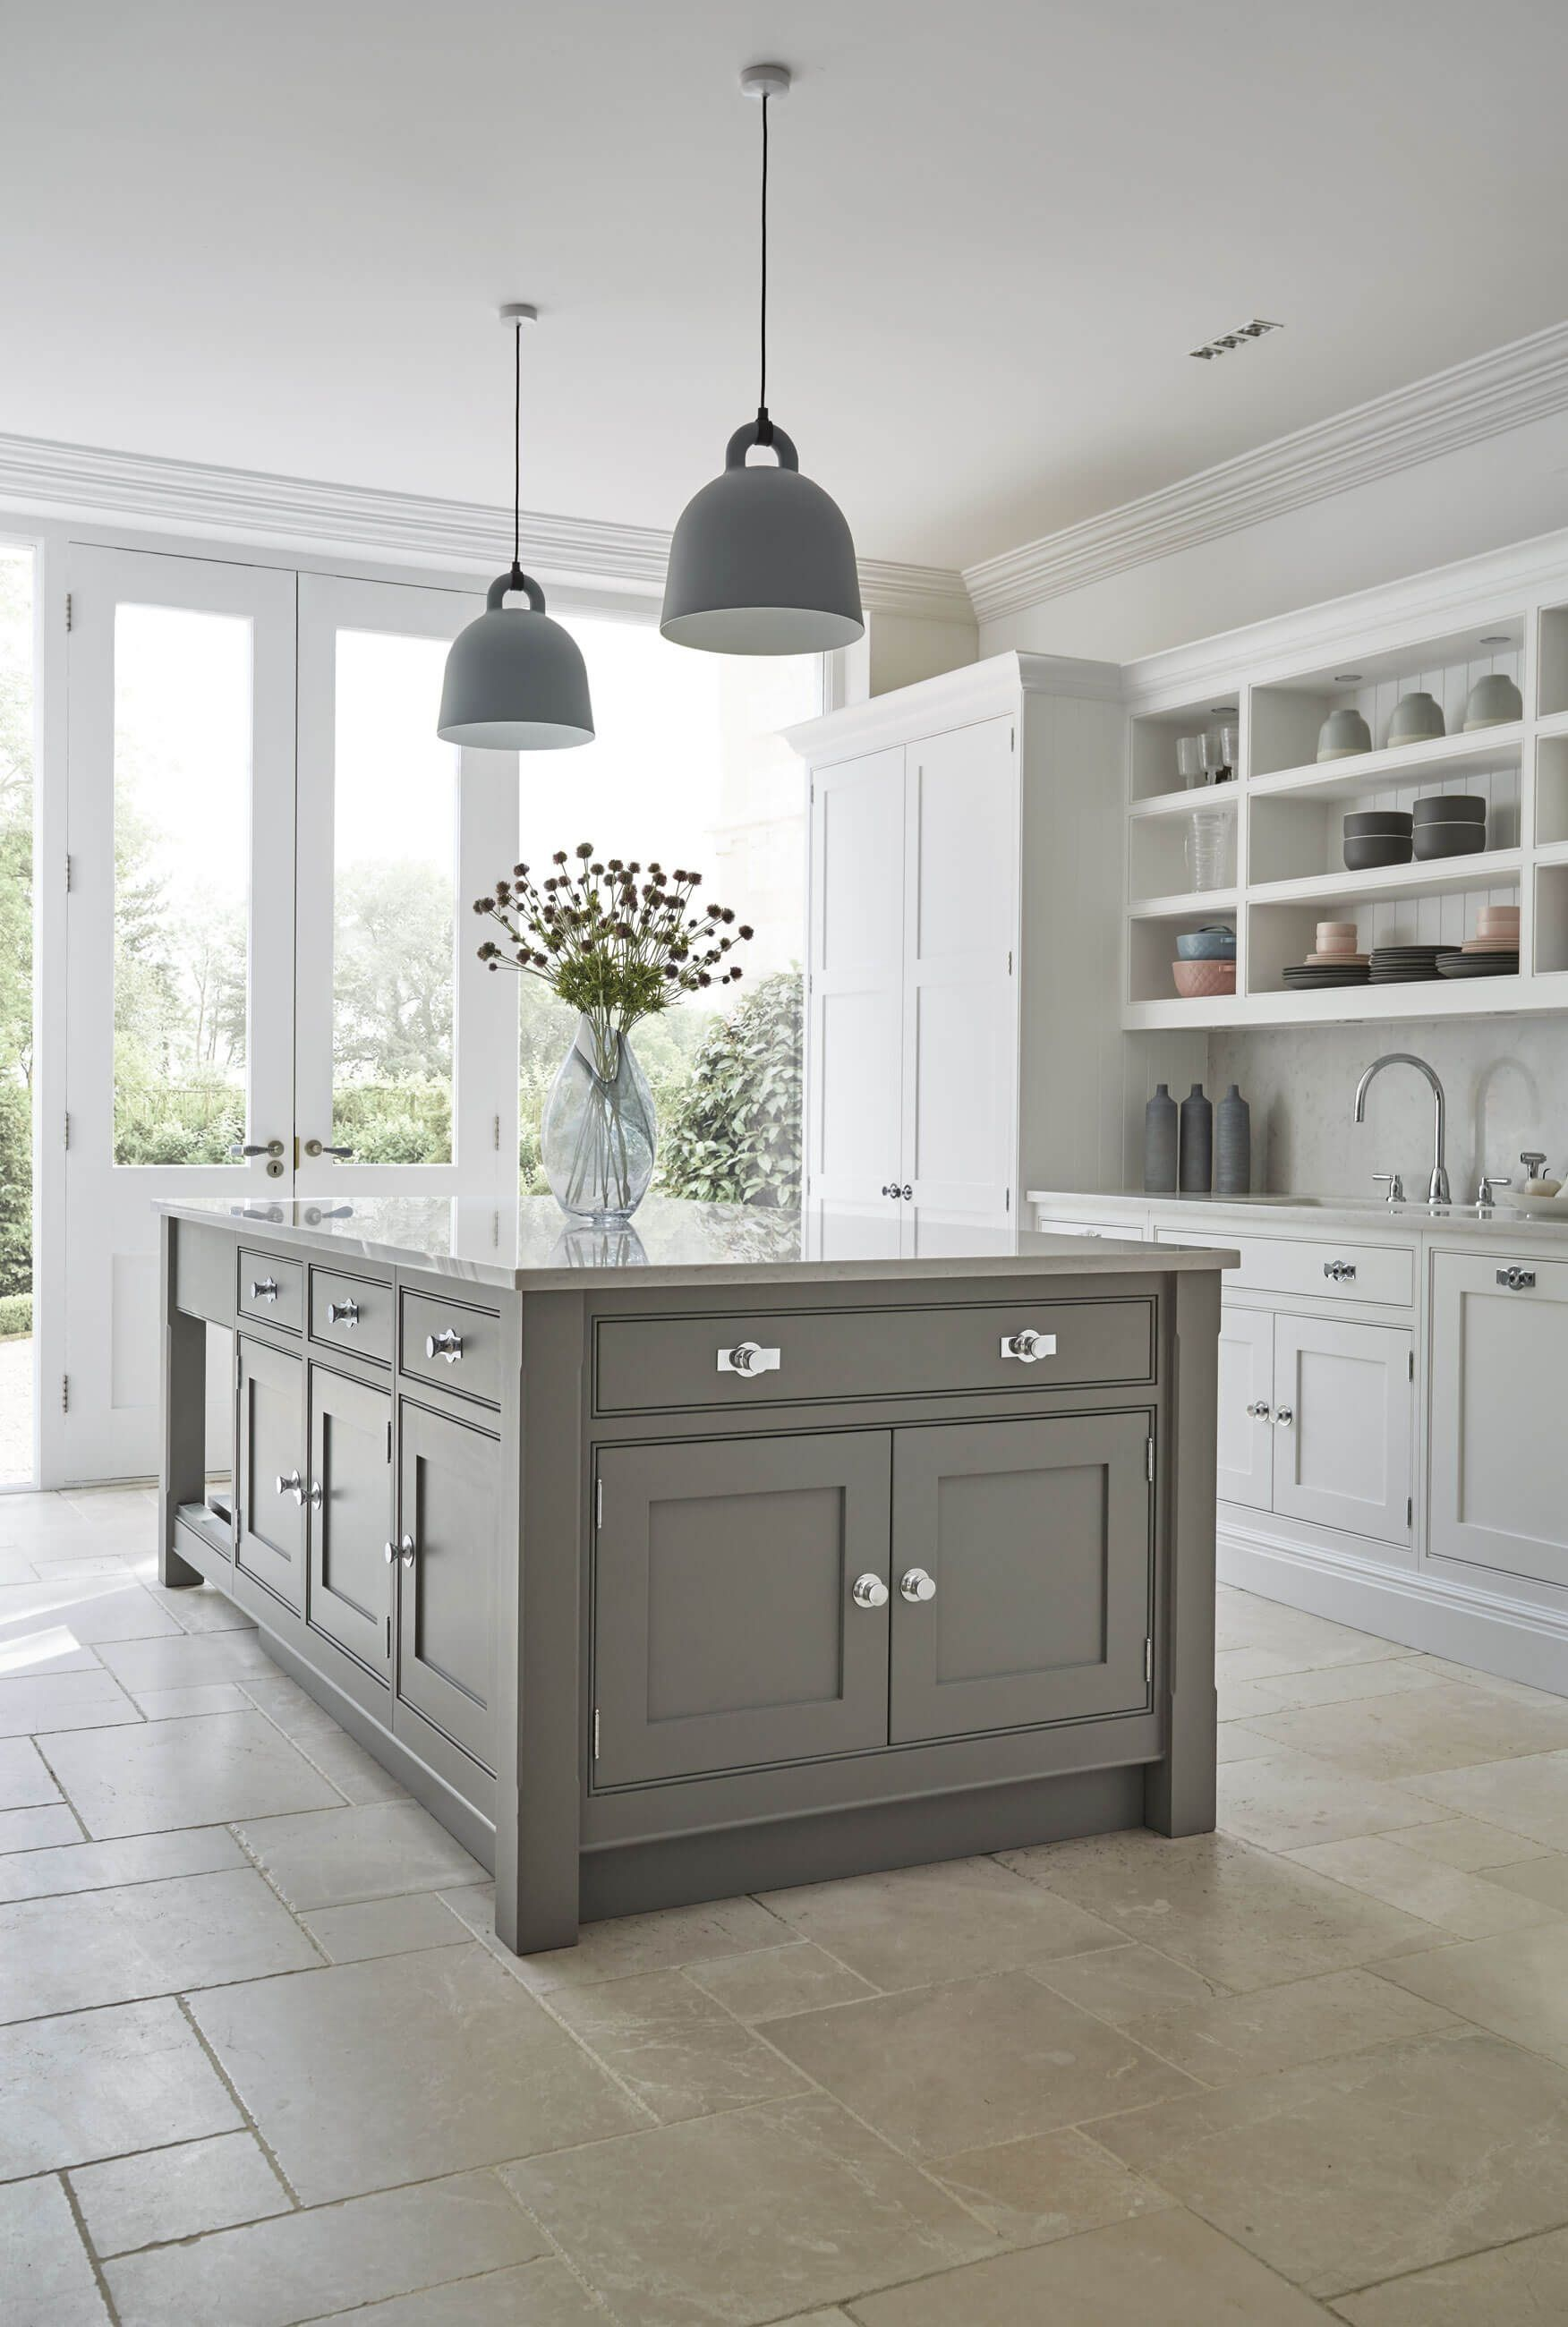 Grey Shaker Kitchen Tom Howley 1000 In 2020 Grey Shaker Kitchen Shaker Style Kitchen Cabinets Modern Shaker Kitchen